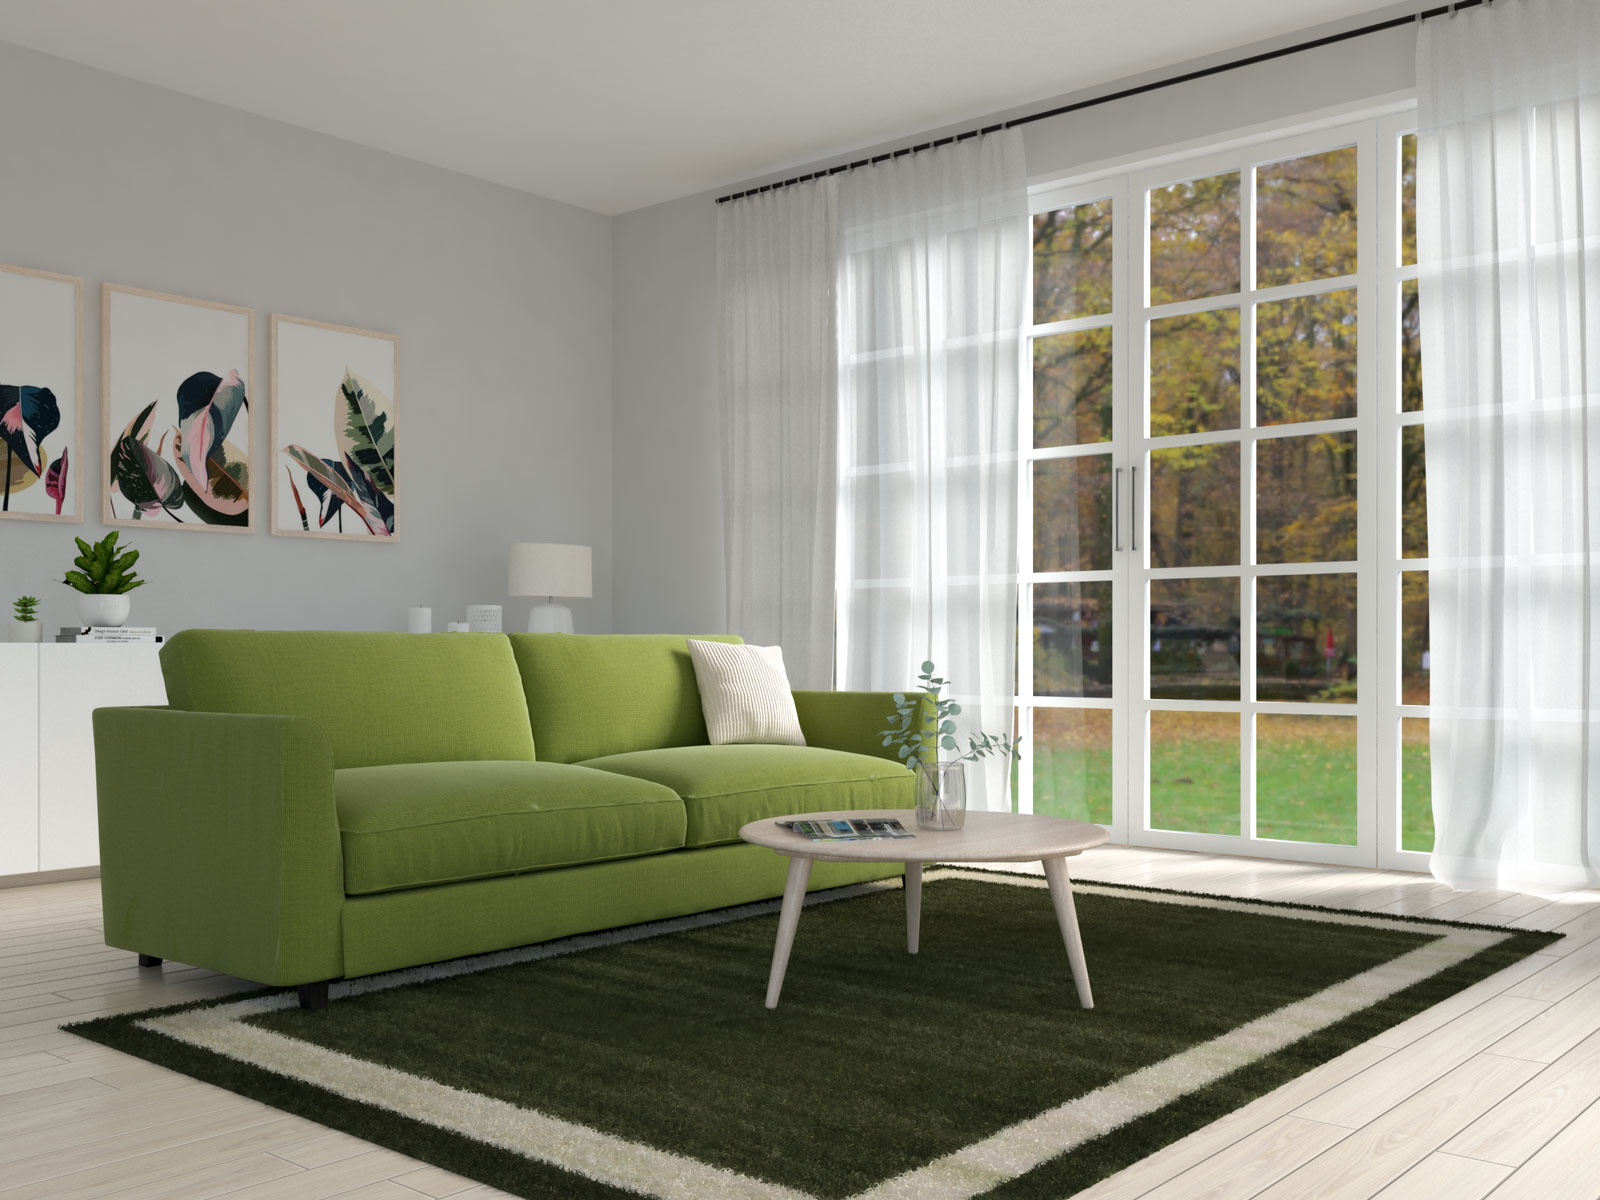 Olive and beige living room ideas